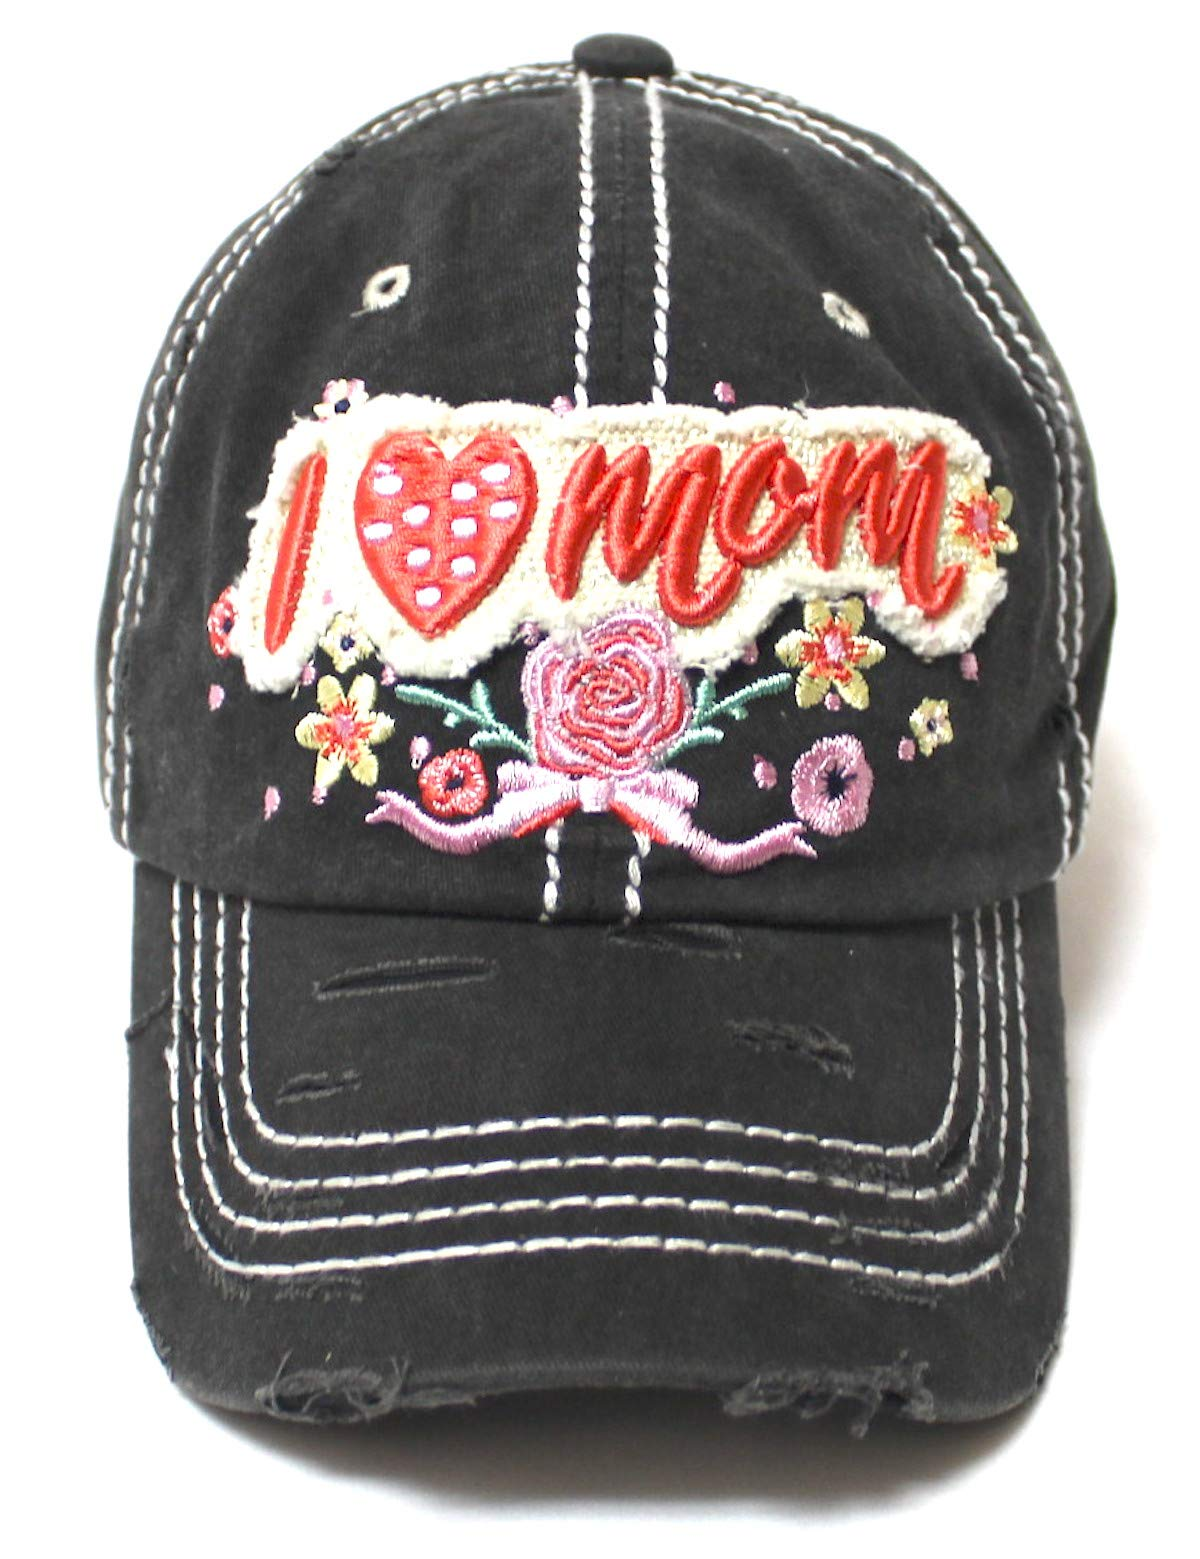 Women's Cap I Love Mom Hearts & Roses Patch Embroidery Monogram Hat, Vintage Black - Caps 'N Vintage